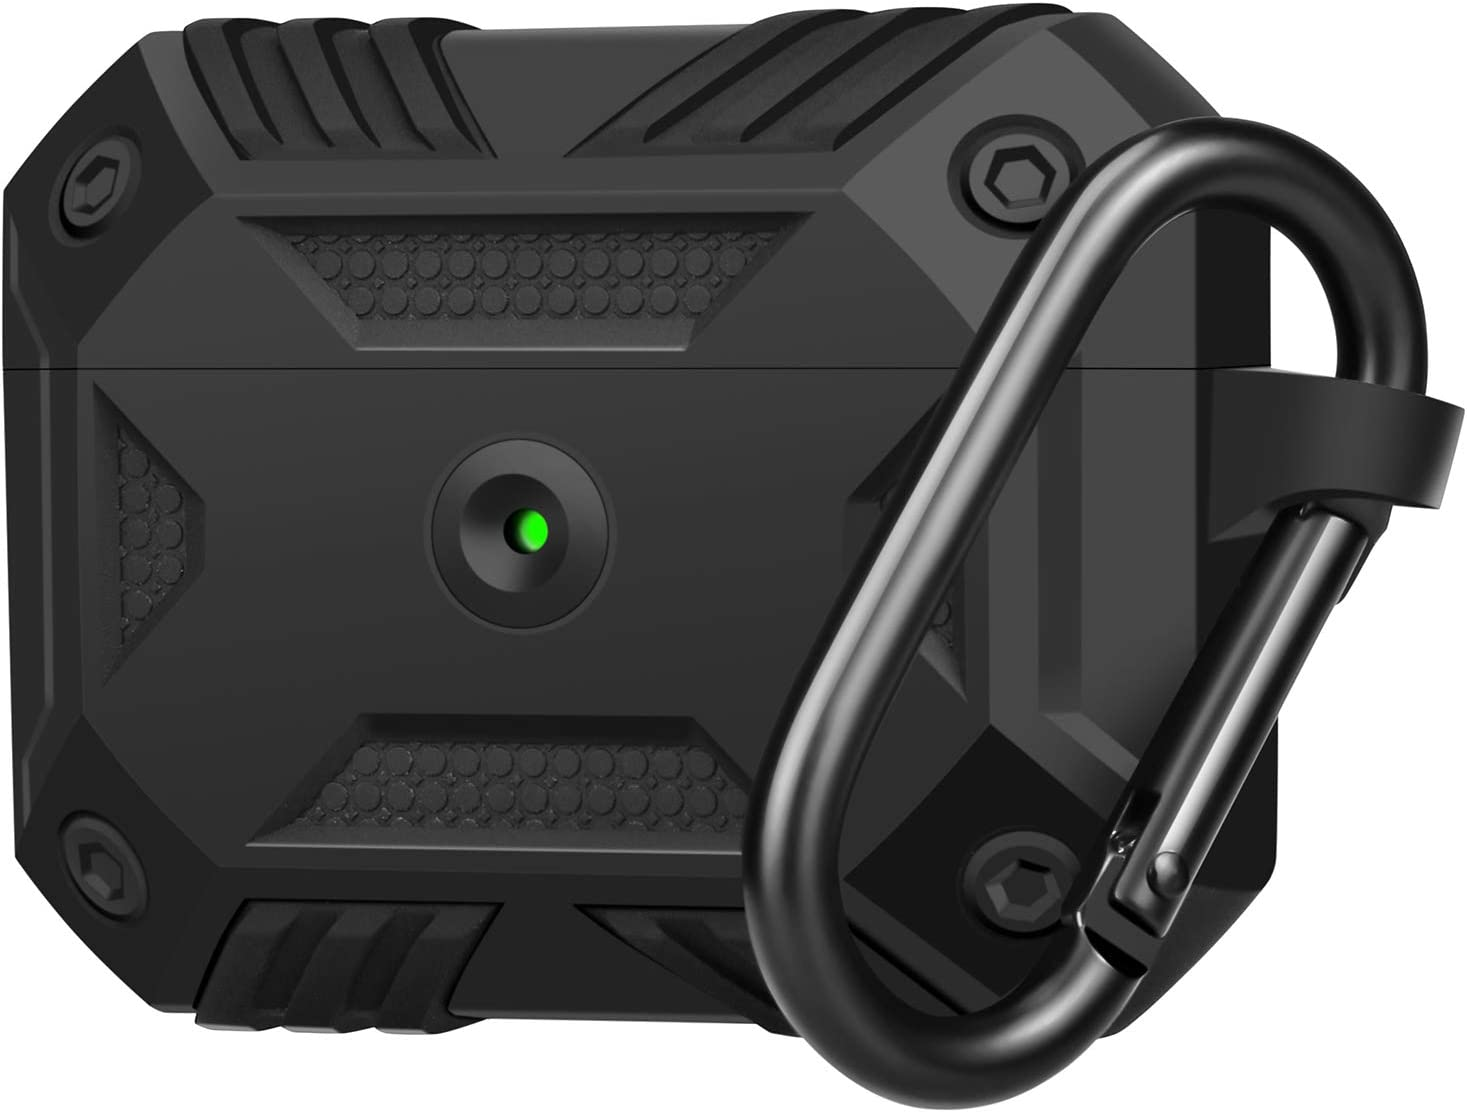 OROBAY for Airpods Pro Case Cover, Full-Body Shockproof Rugged Soft Silicone Protective Case Cover with Carabiner for Apple Airpods Pro (2019), Matte Black